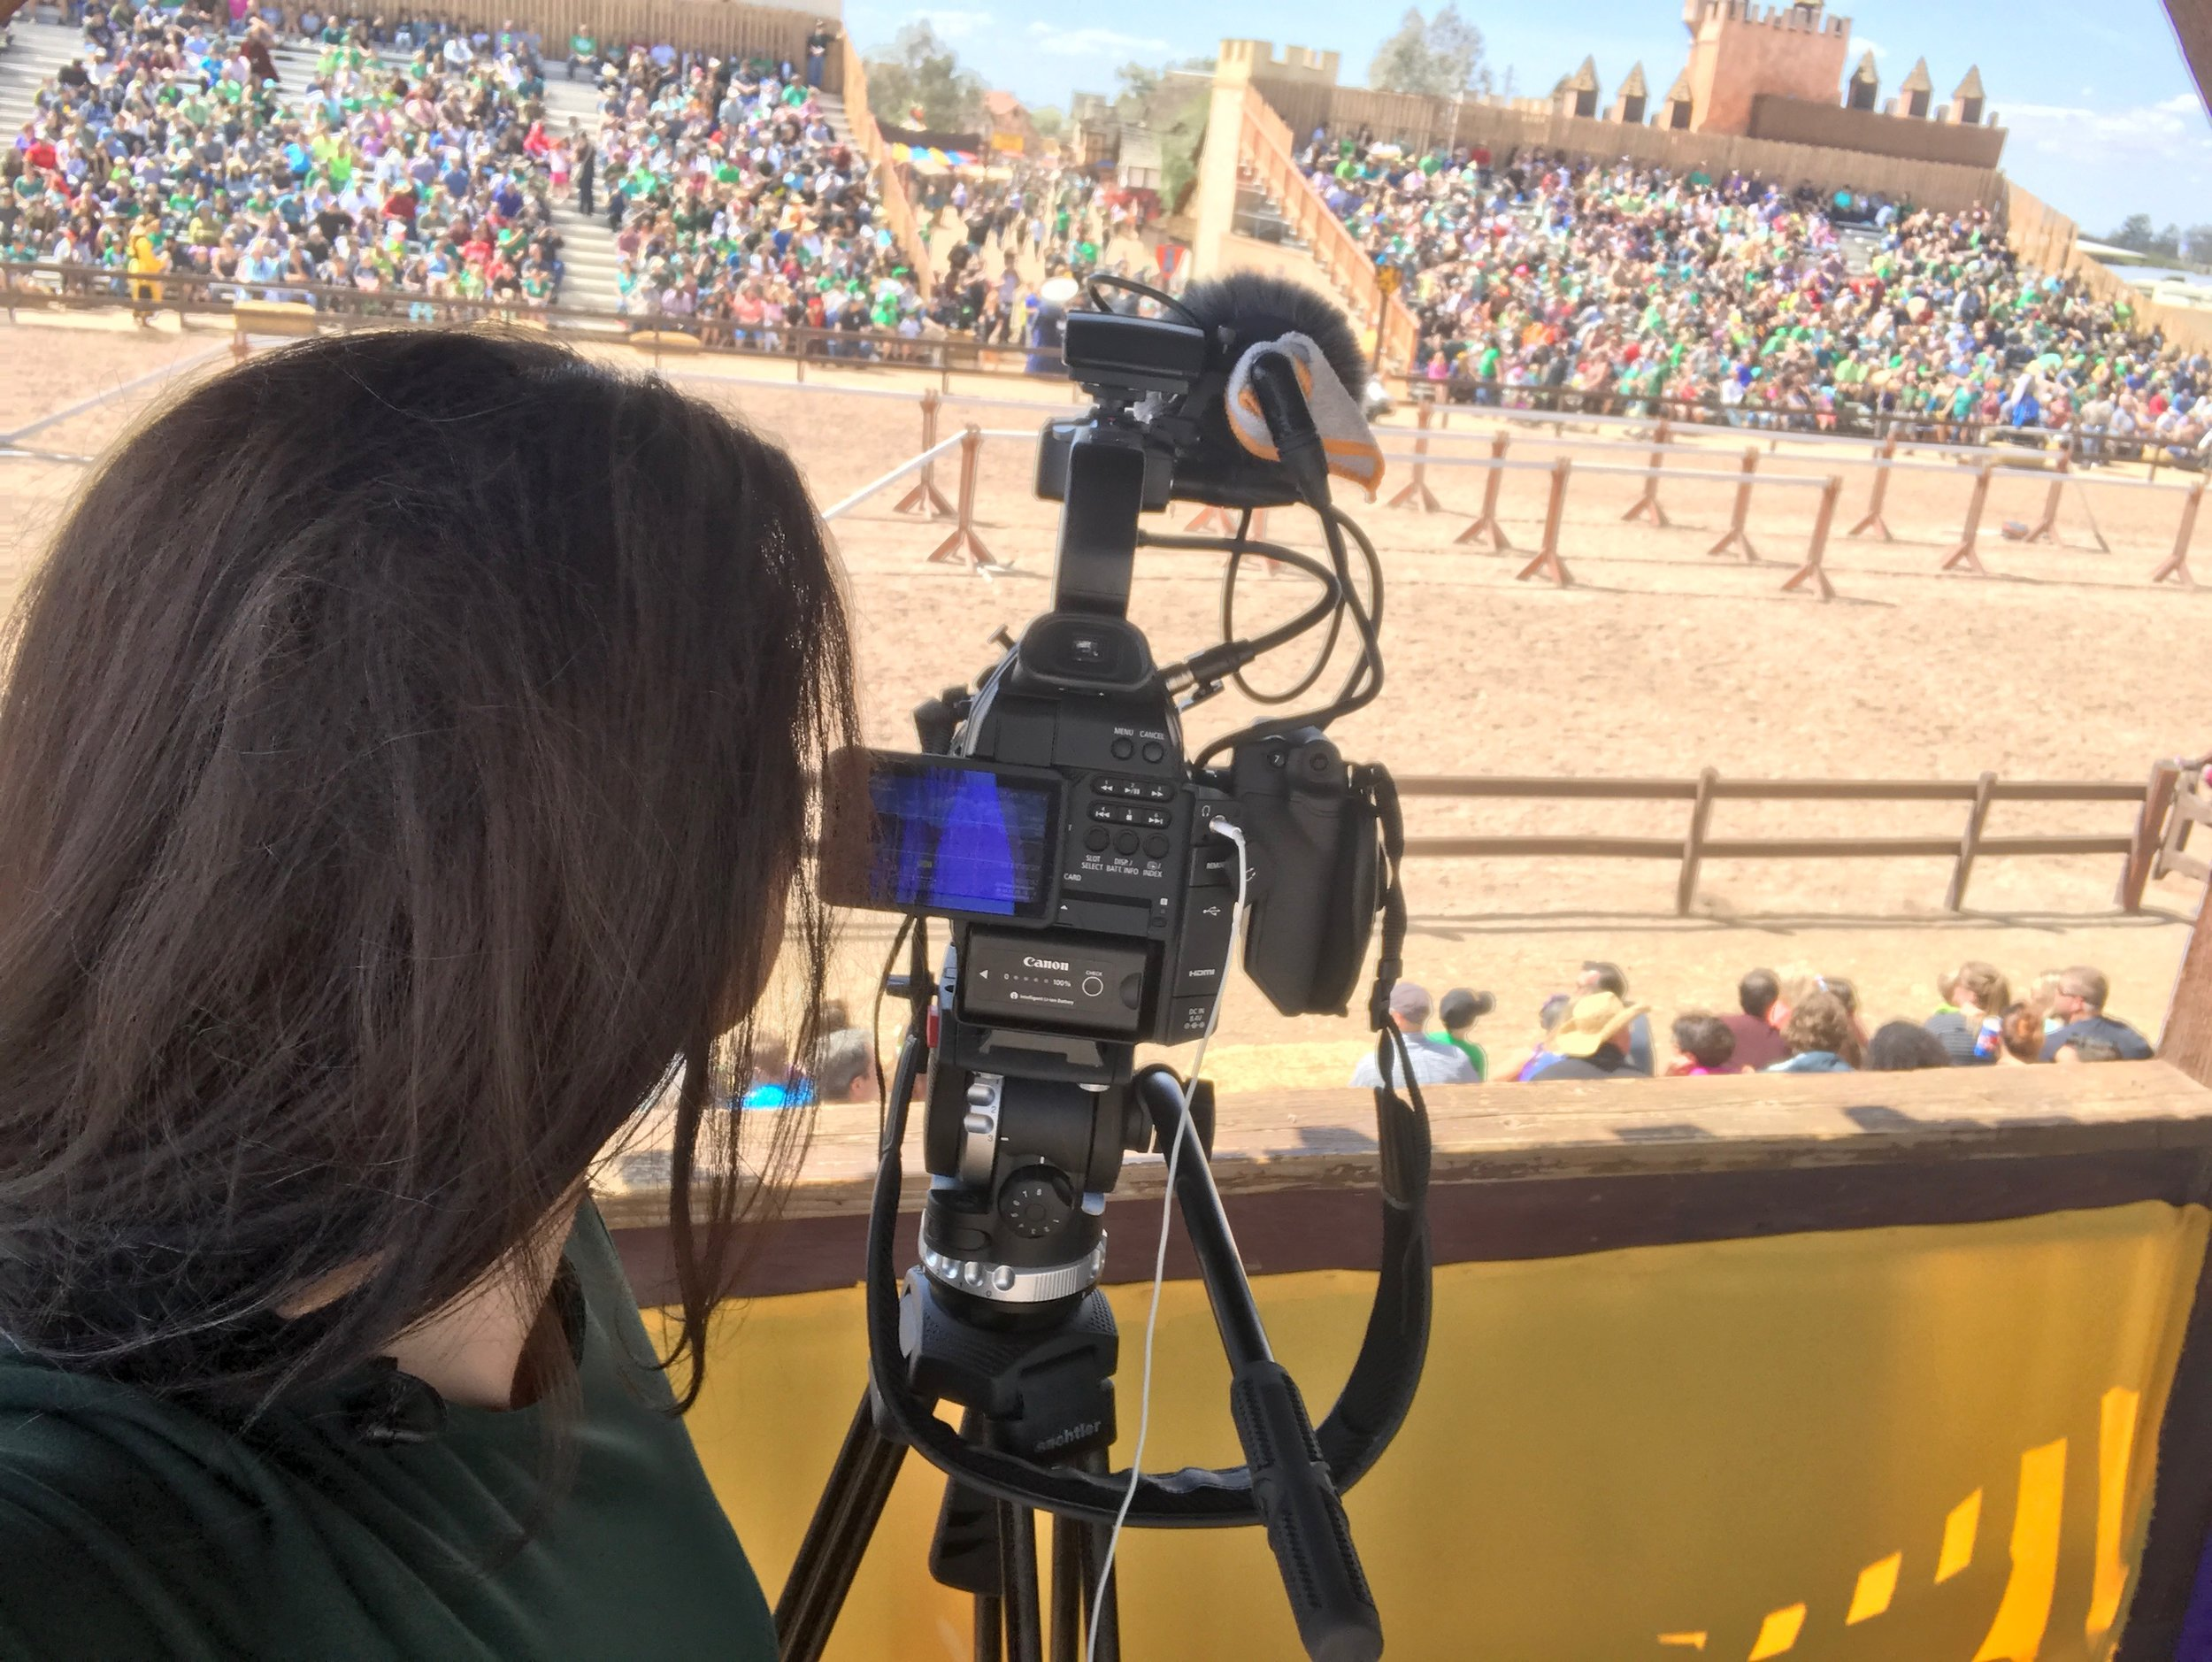 Covering the Jousting Tournament